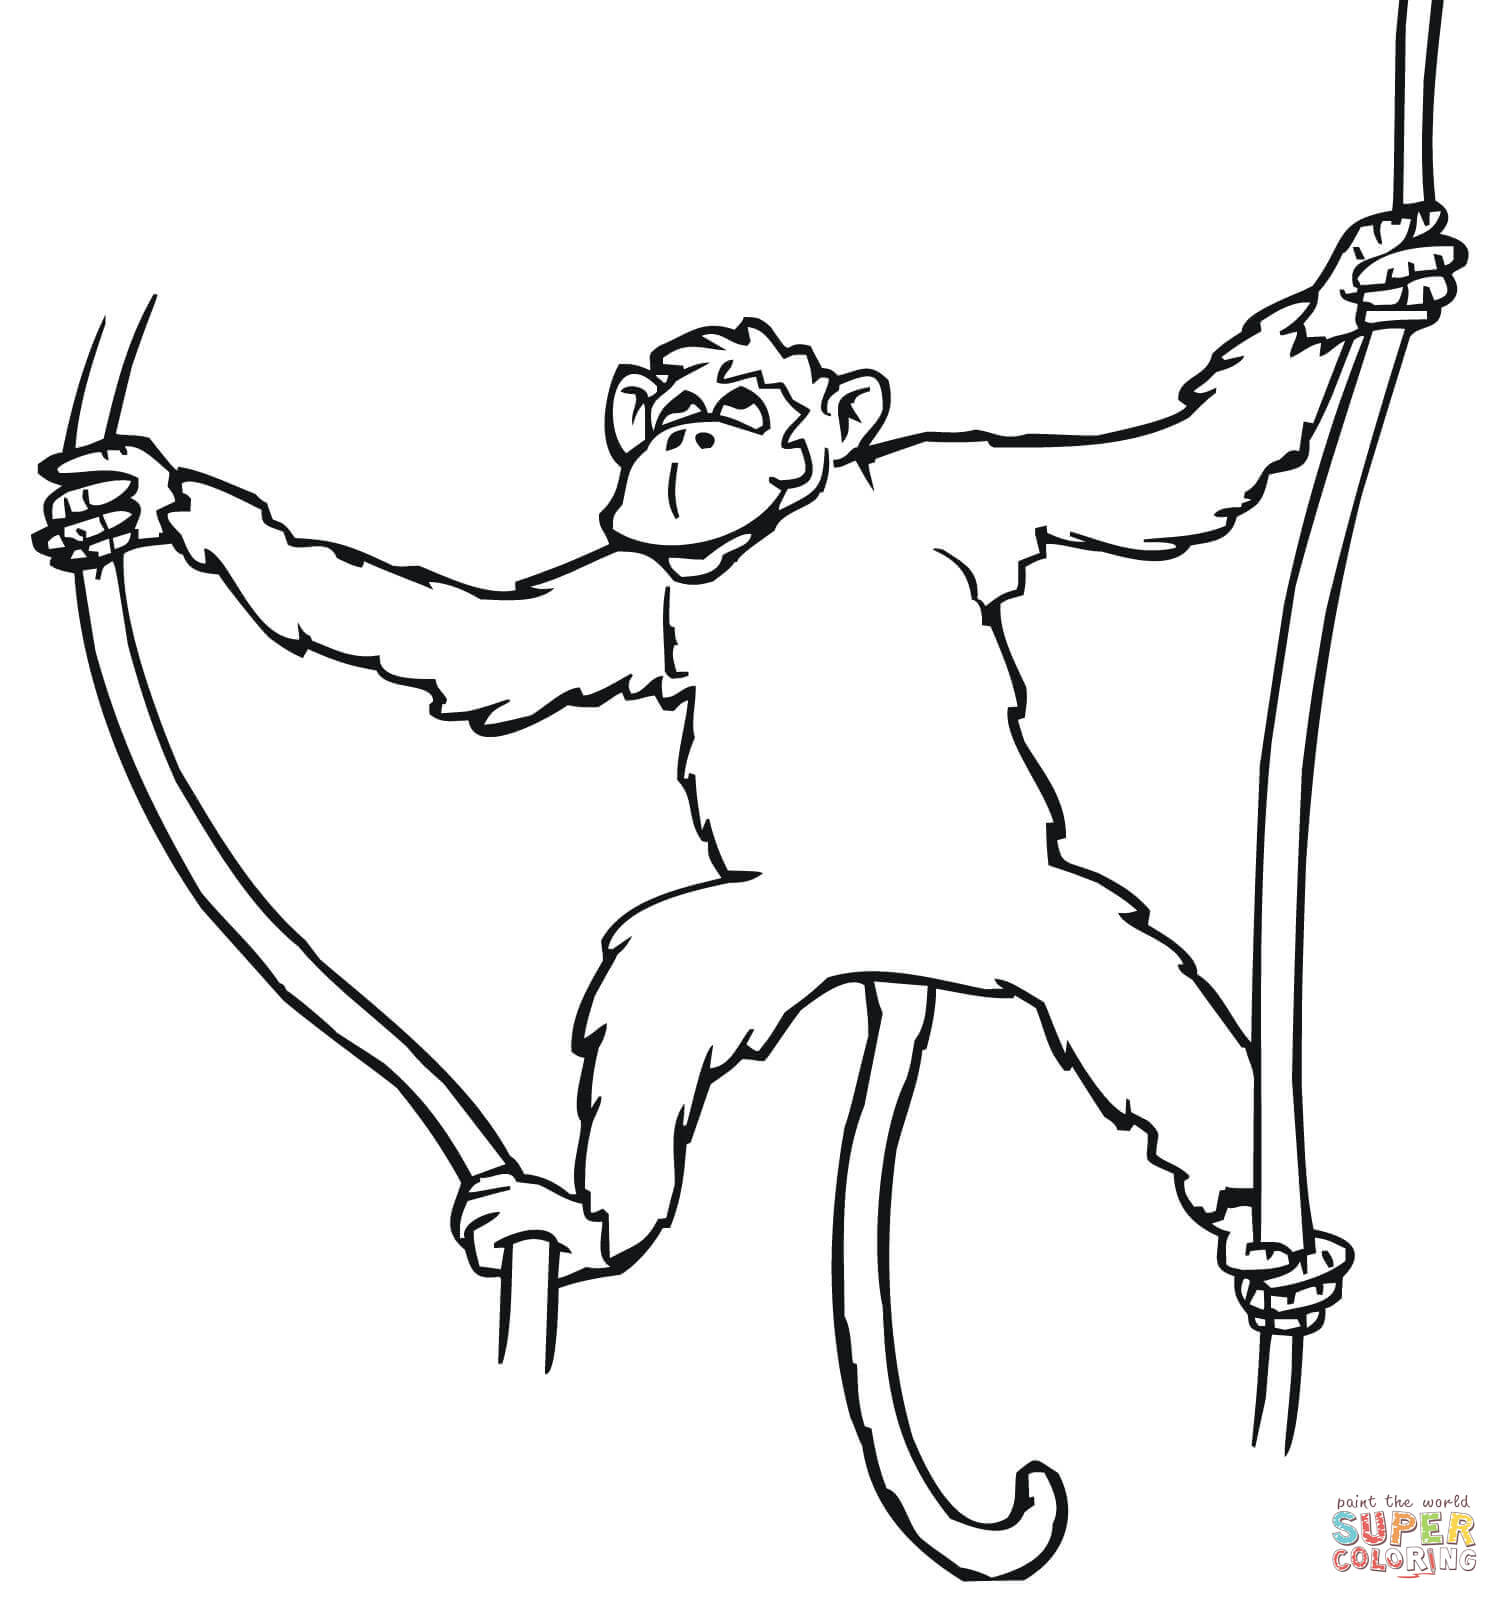 1500x1600 Howler Monkey Sitting On A Tree Coloring Page Free Printable